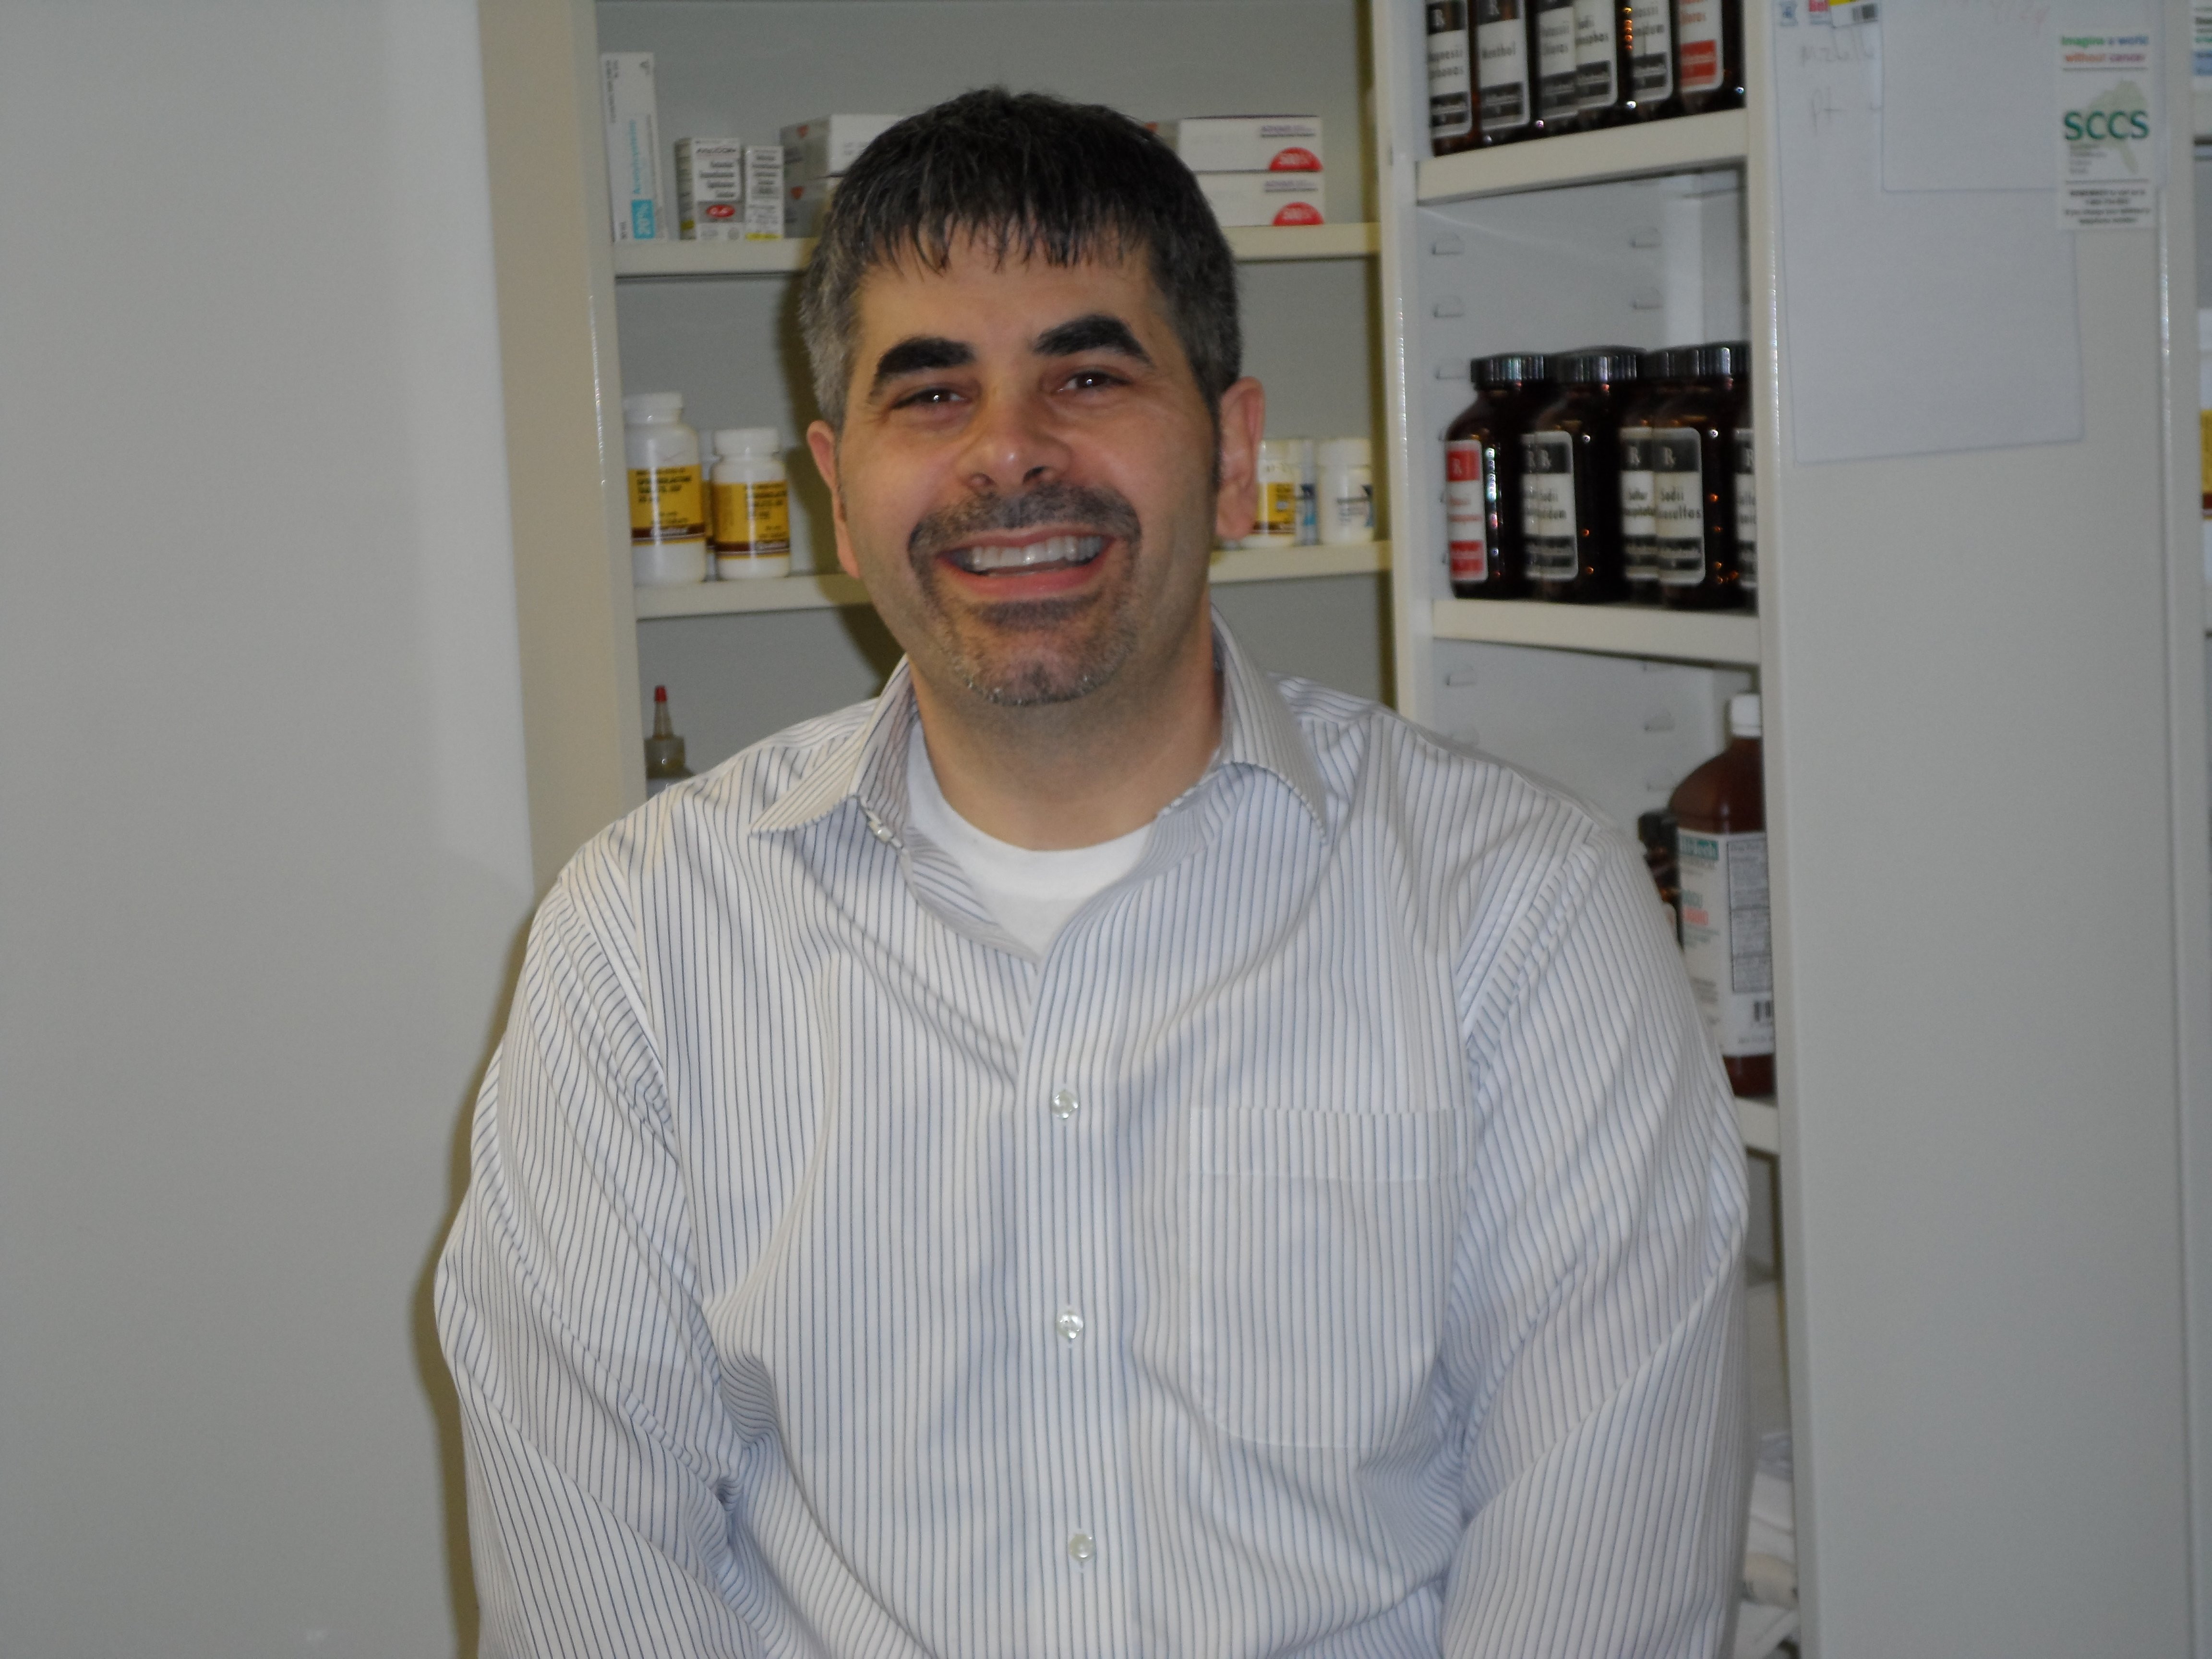 Photos courtesy of photos of Eric Belldina / Masontown pharmacist Eric Belldina recently purchased on eBay an essay he wrote in the 11th grade about an amusement park.